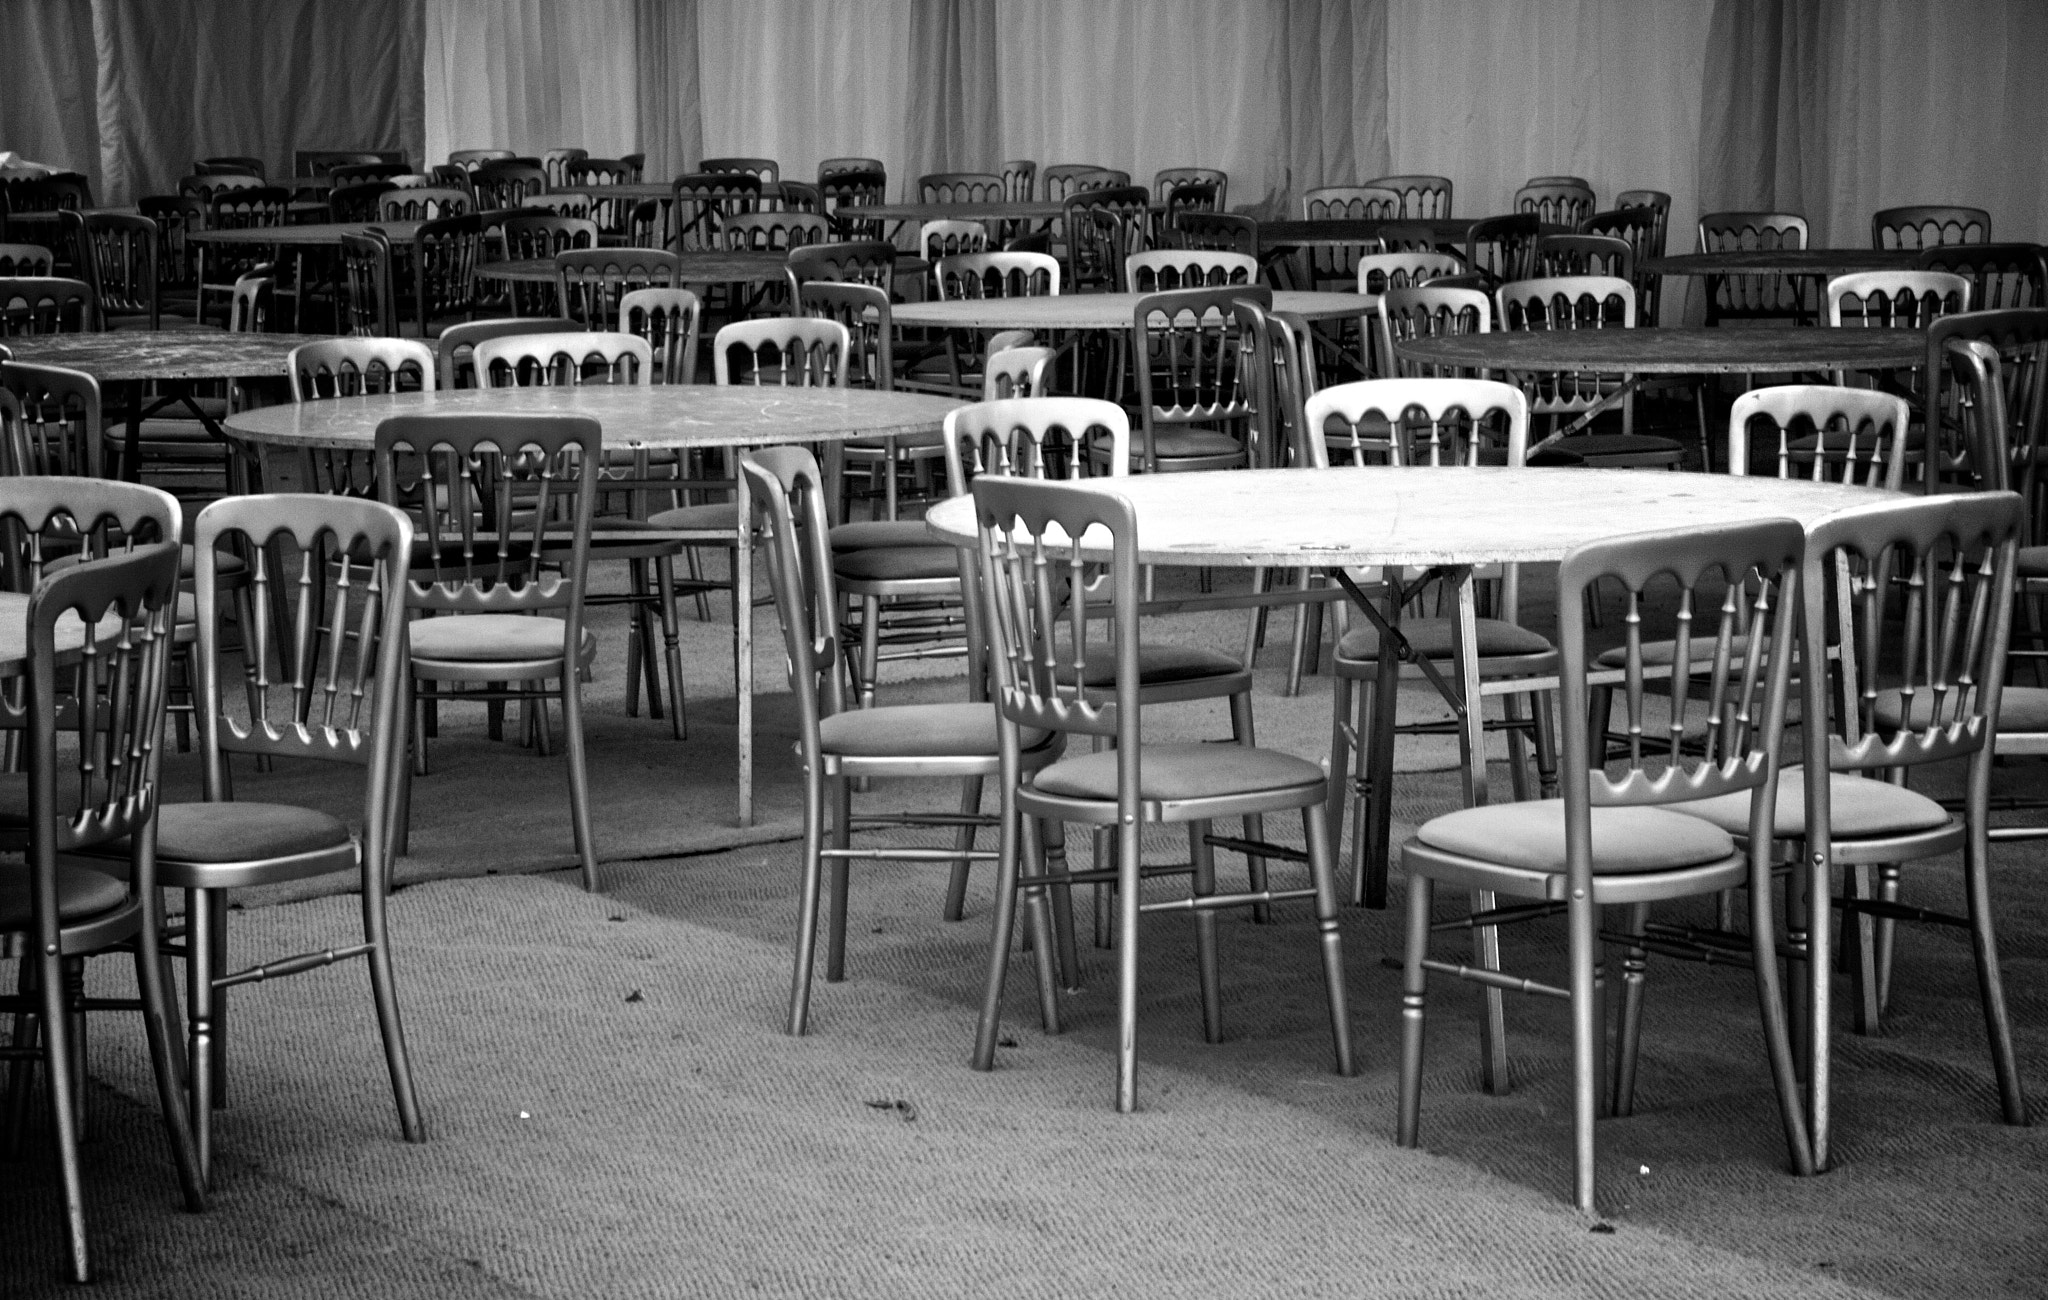 Photograph Chairs by Taddeo Zacchini on 500px